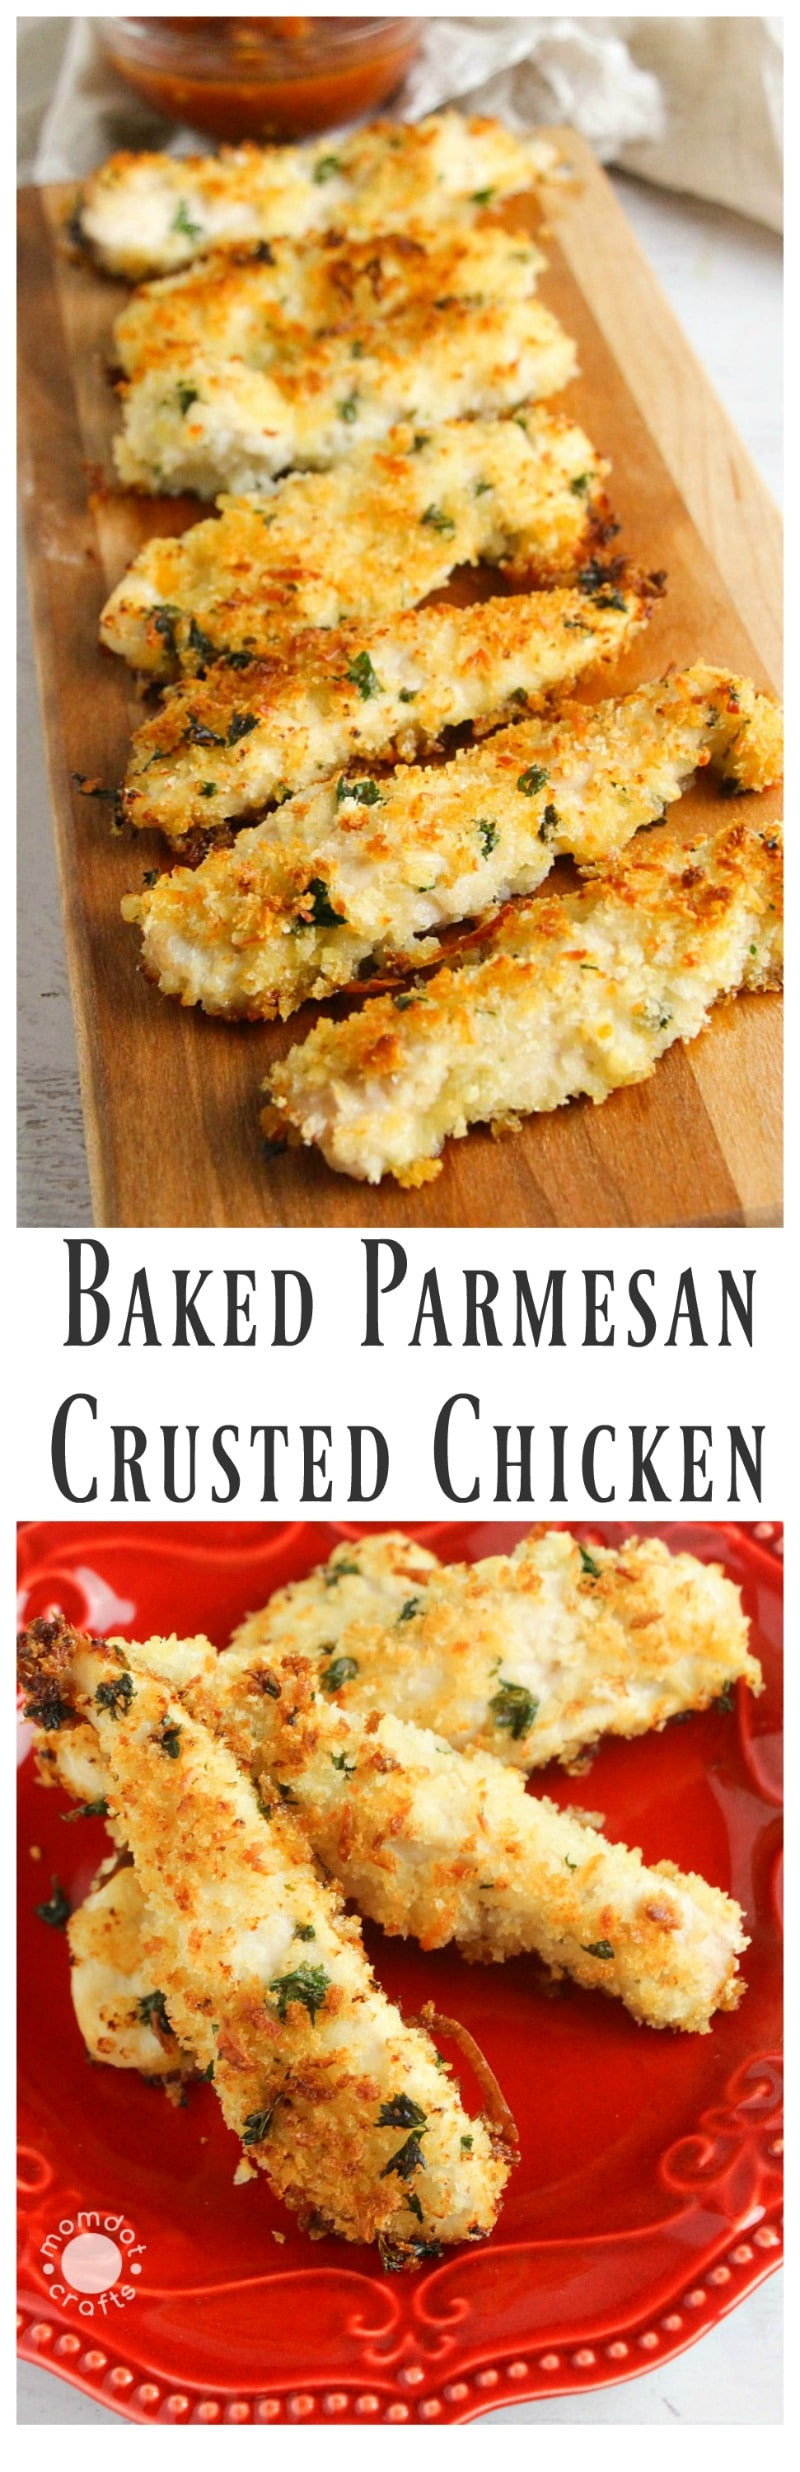 Baked Parmesan Crusted Chicken  Baked Parmesan Crusted Chicken Recipe MomDot